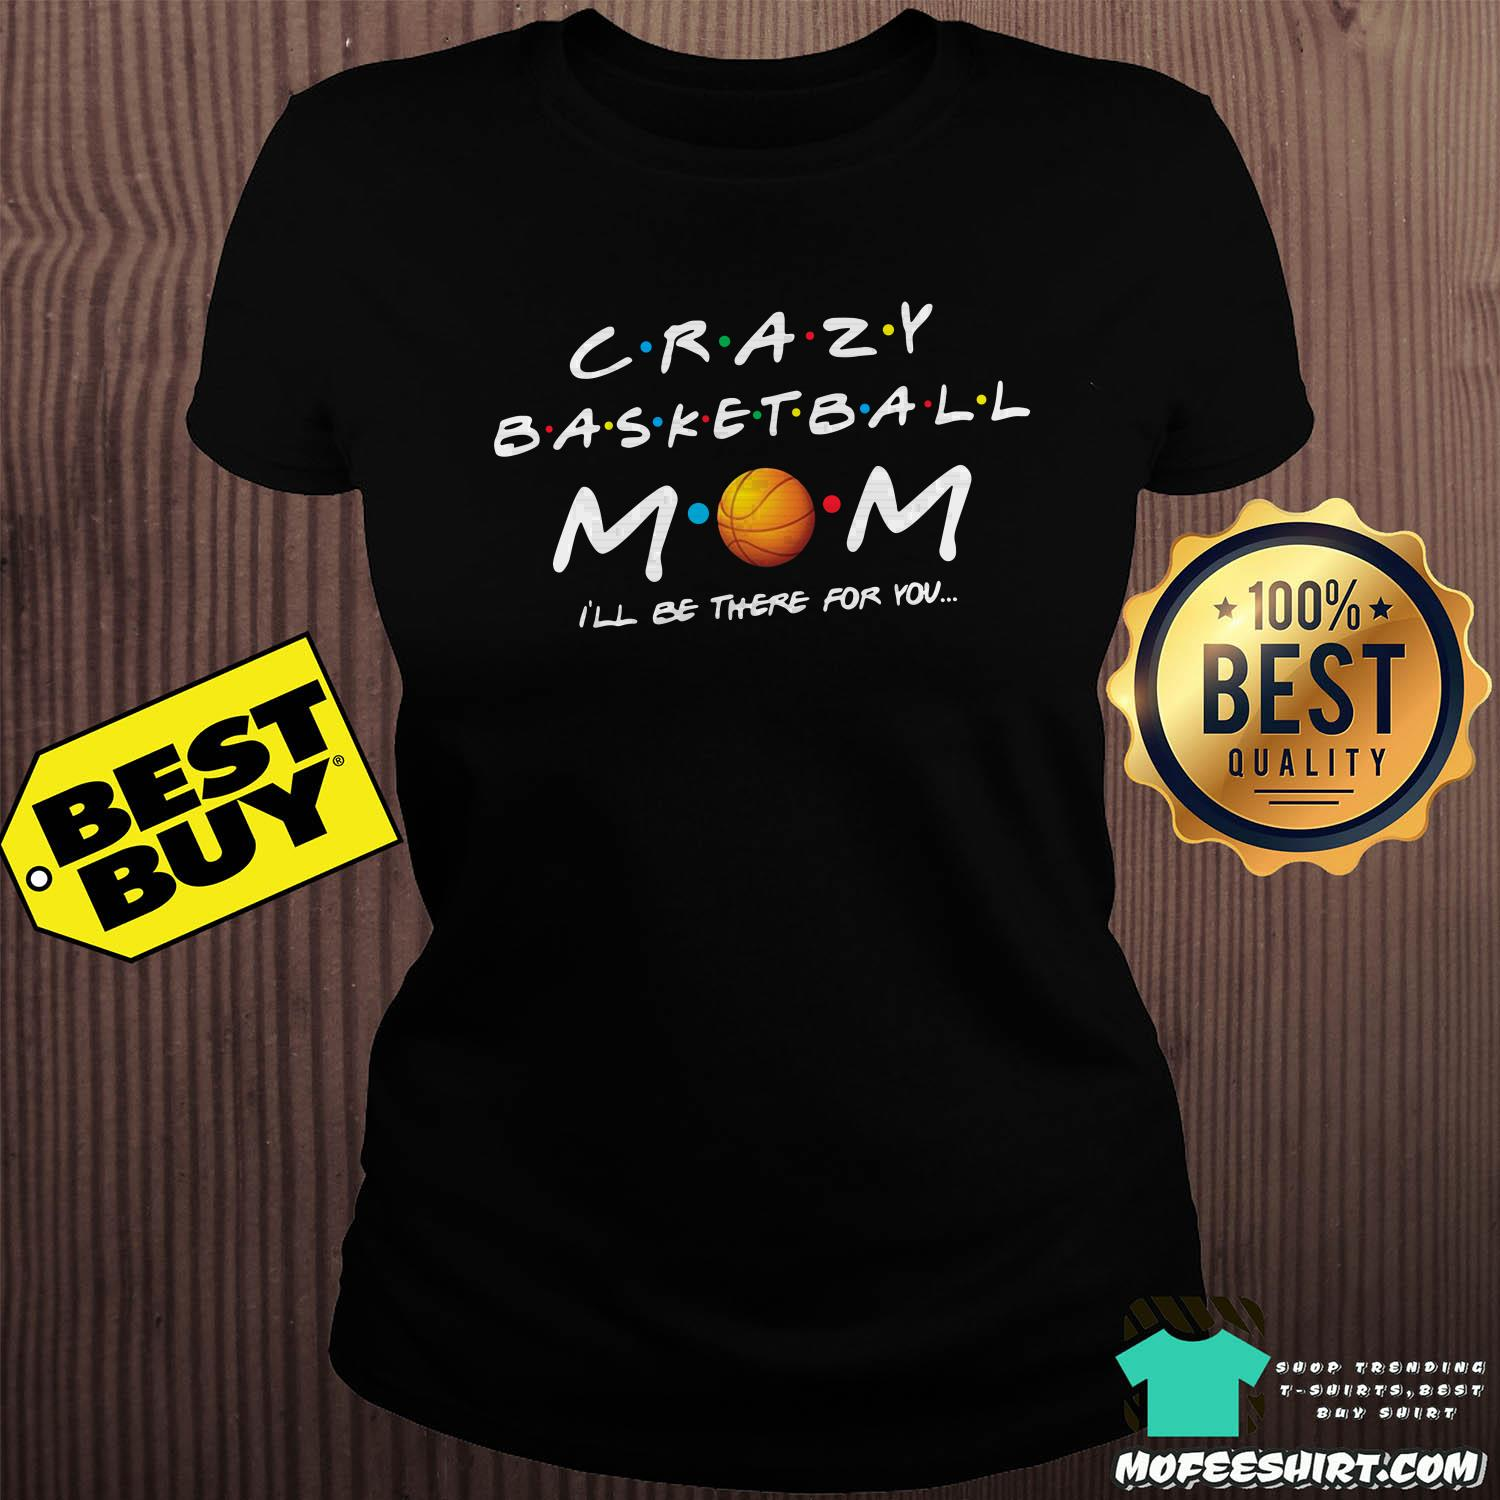 crazy basketball mom ill be there for you shirt ladies tee - Crazy Basketball Mom I'll be there for you shirt